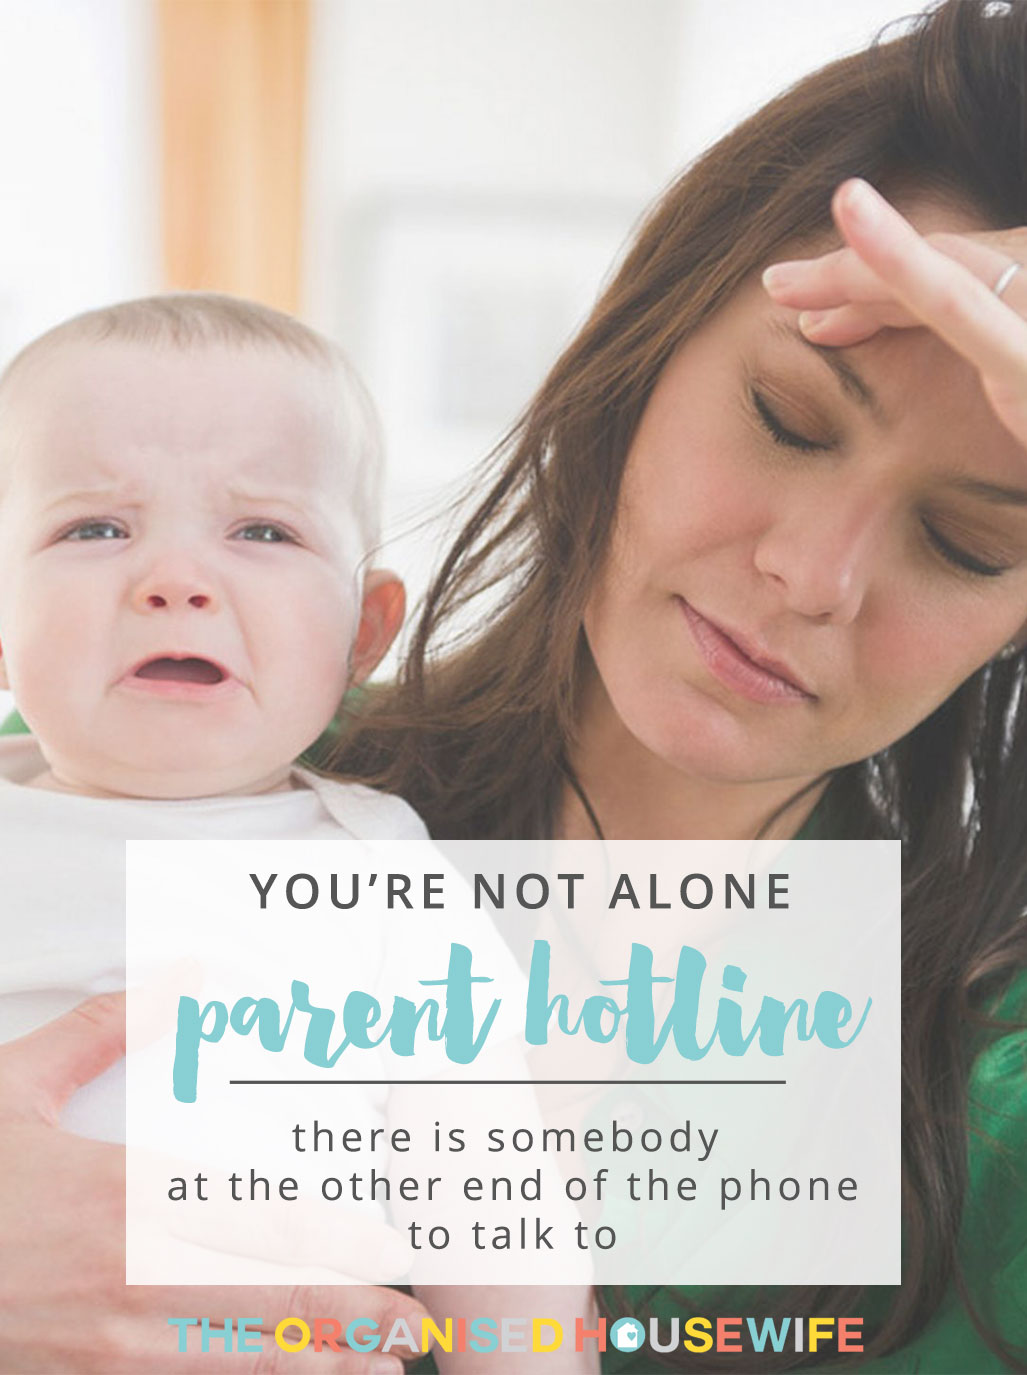 Being a parent is really fun, rewarding, amazing, life changing and exhilarating. But it is also REALLY, REALLY hard work. Parentline is a confidential hotline that offers support, information and counselling for parents of any stage.